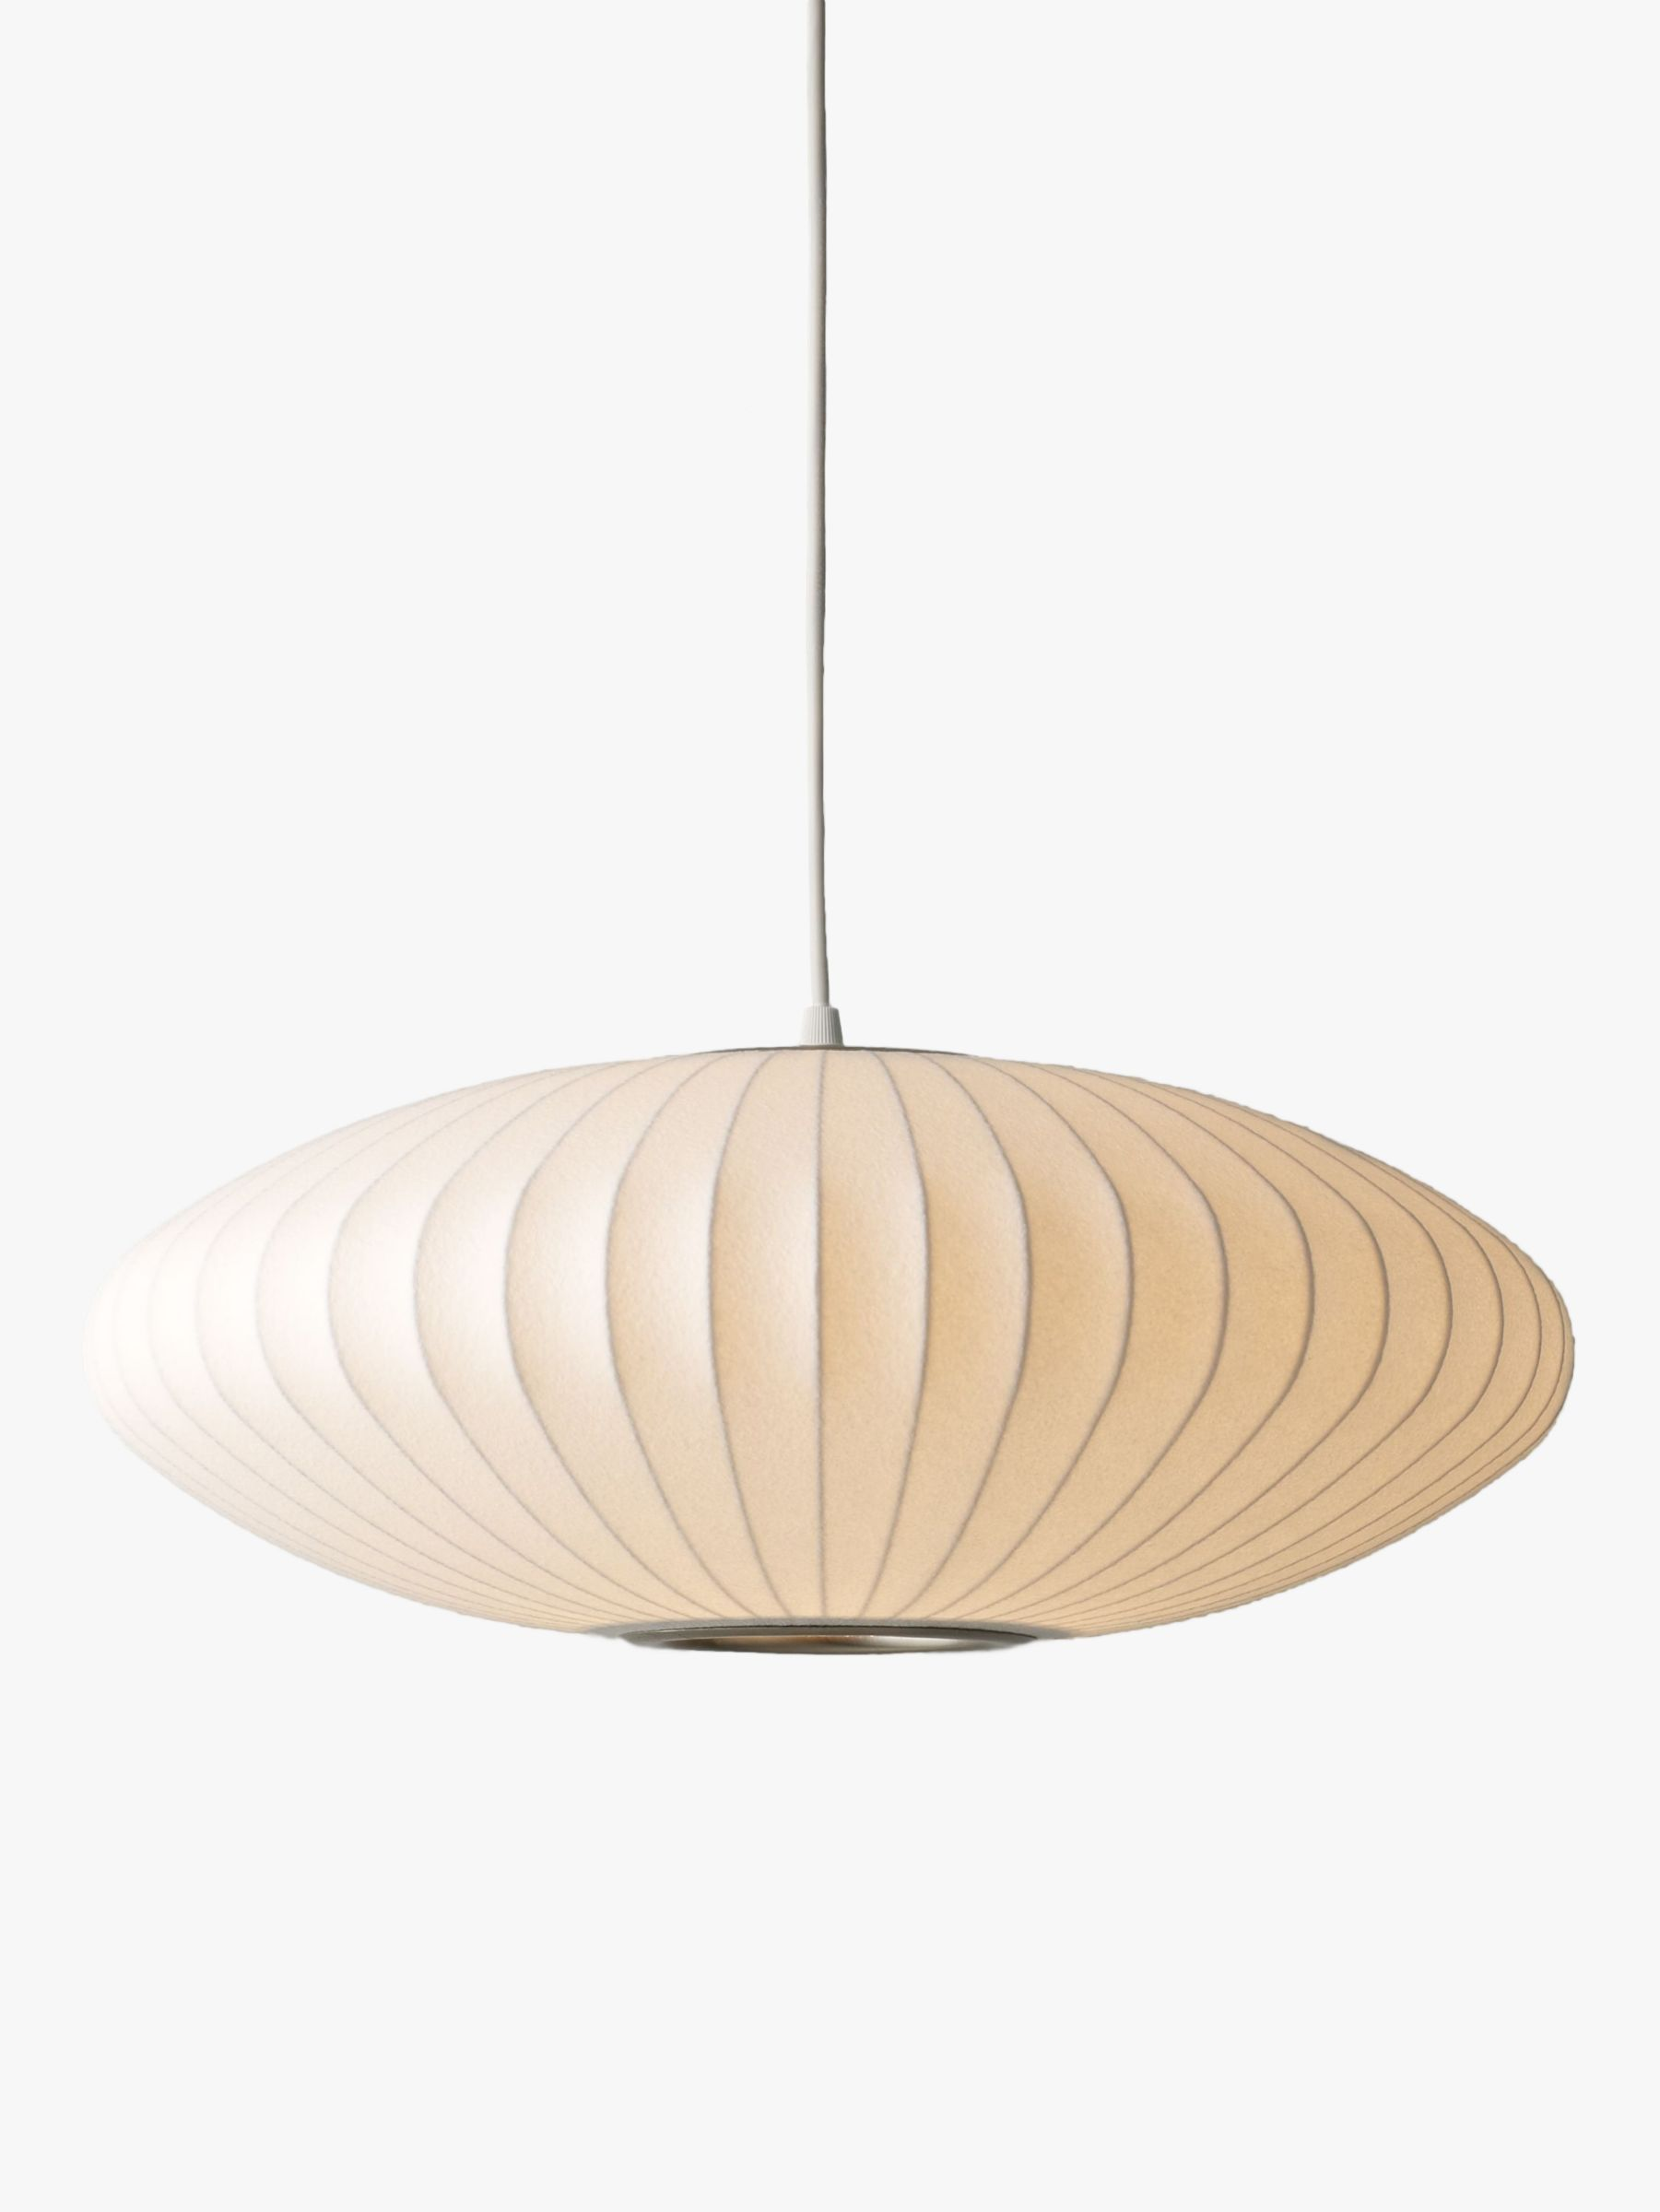 Herman Miller Herman Miller Bubble Saucer Ceiling Light, Small